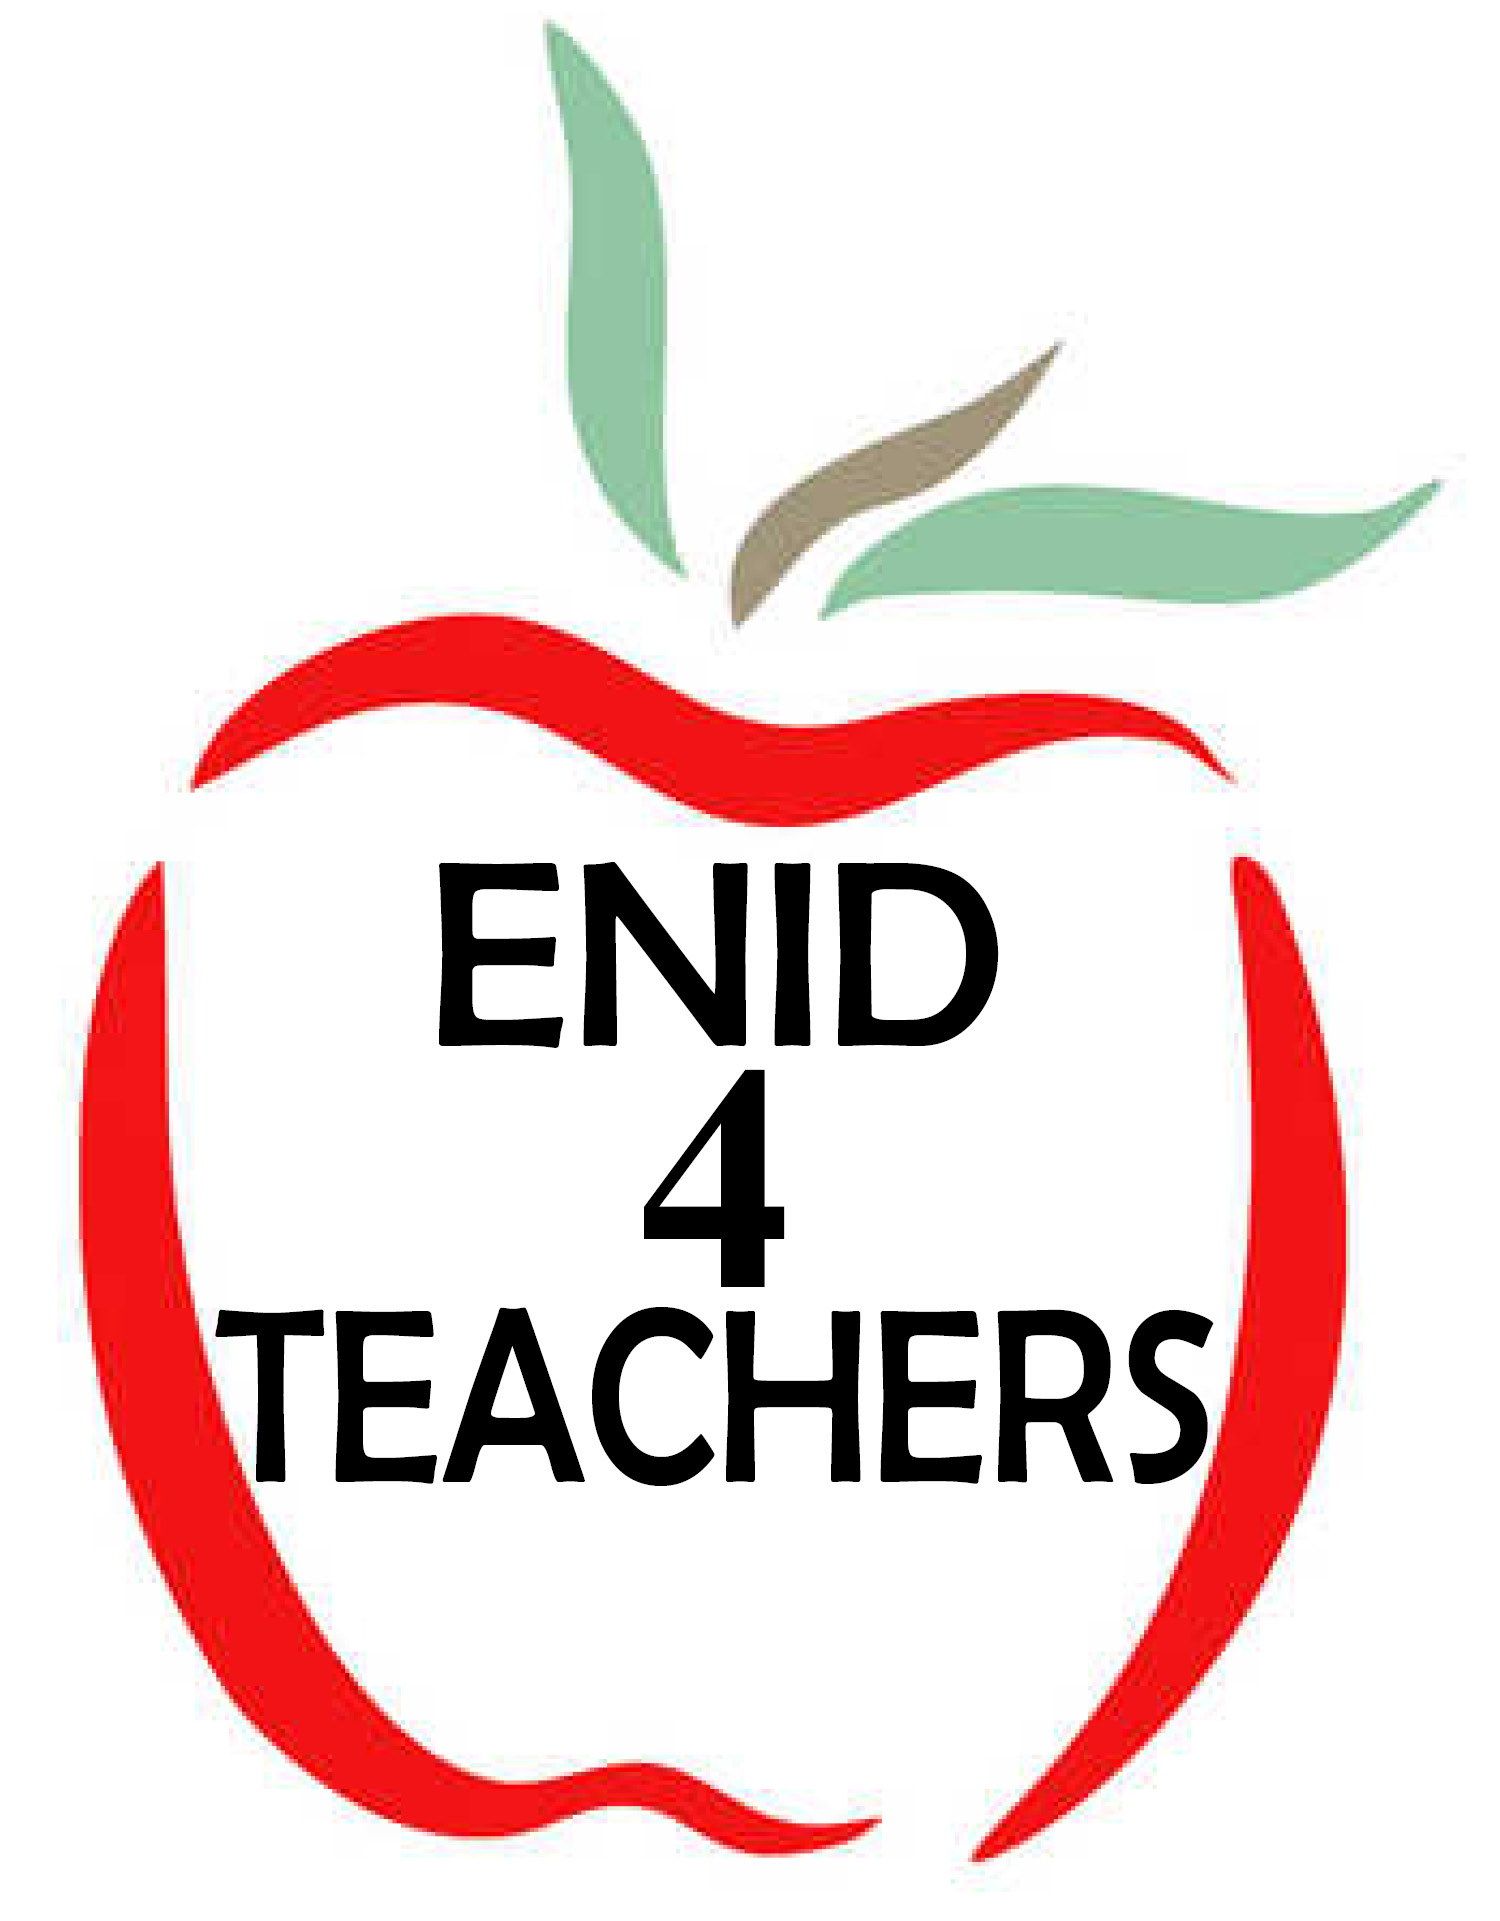 ENID 4 TEACHERS